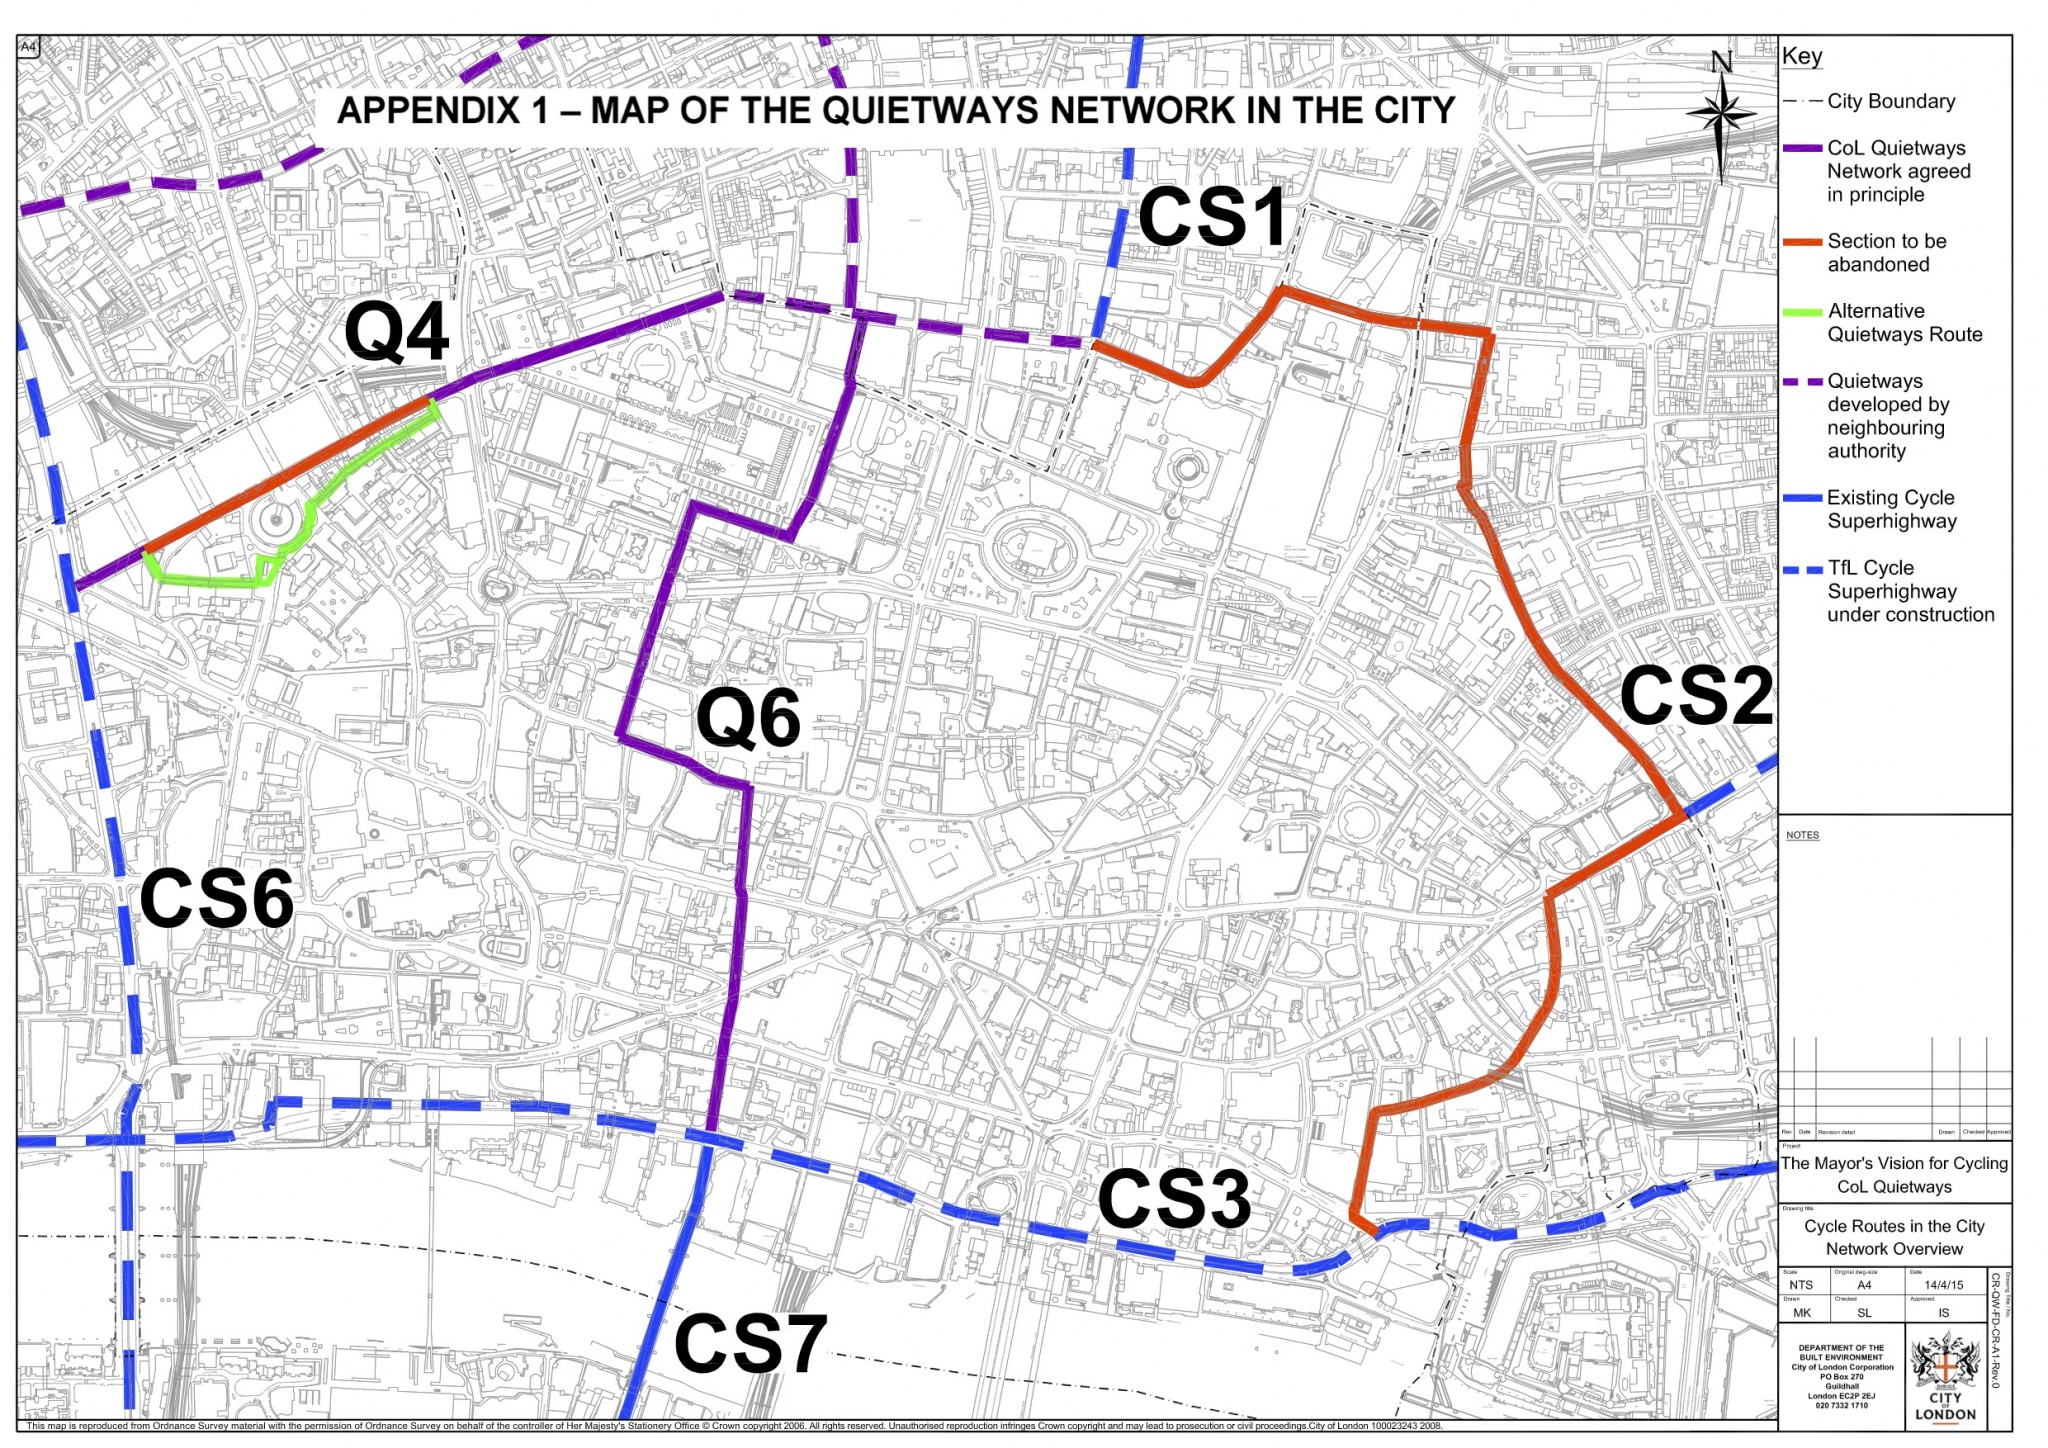 city of london grid from gateway 34 options appraisal document